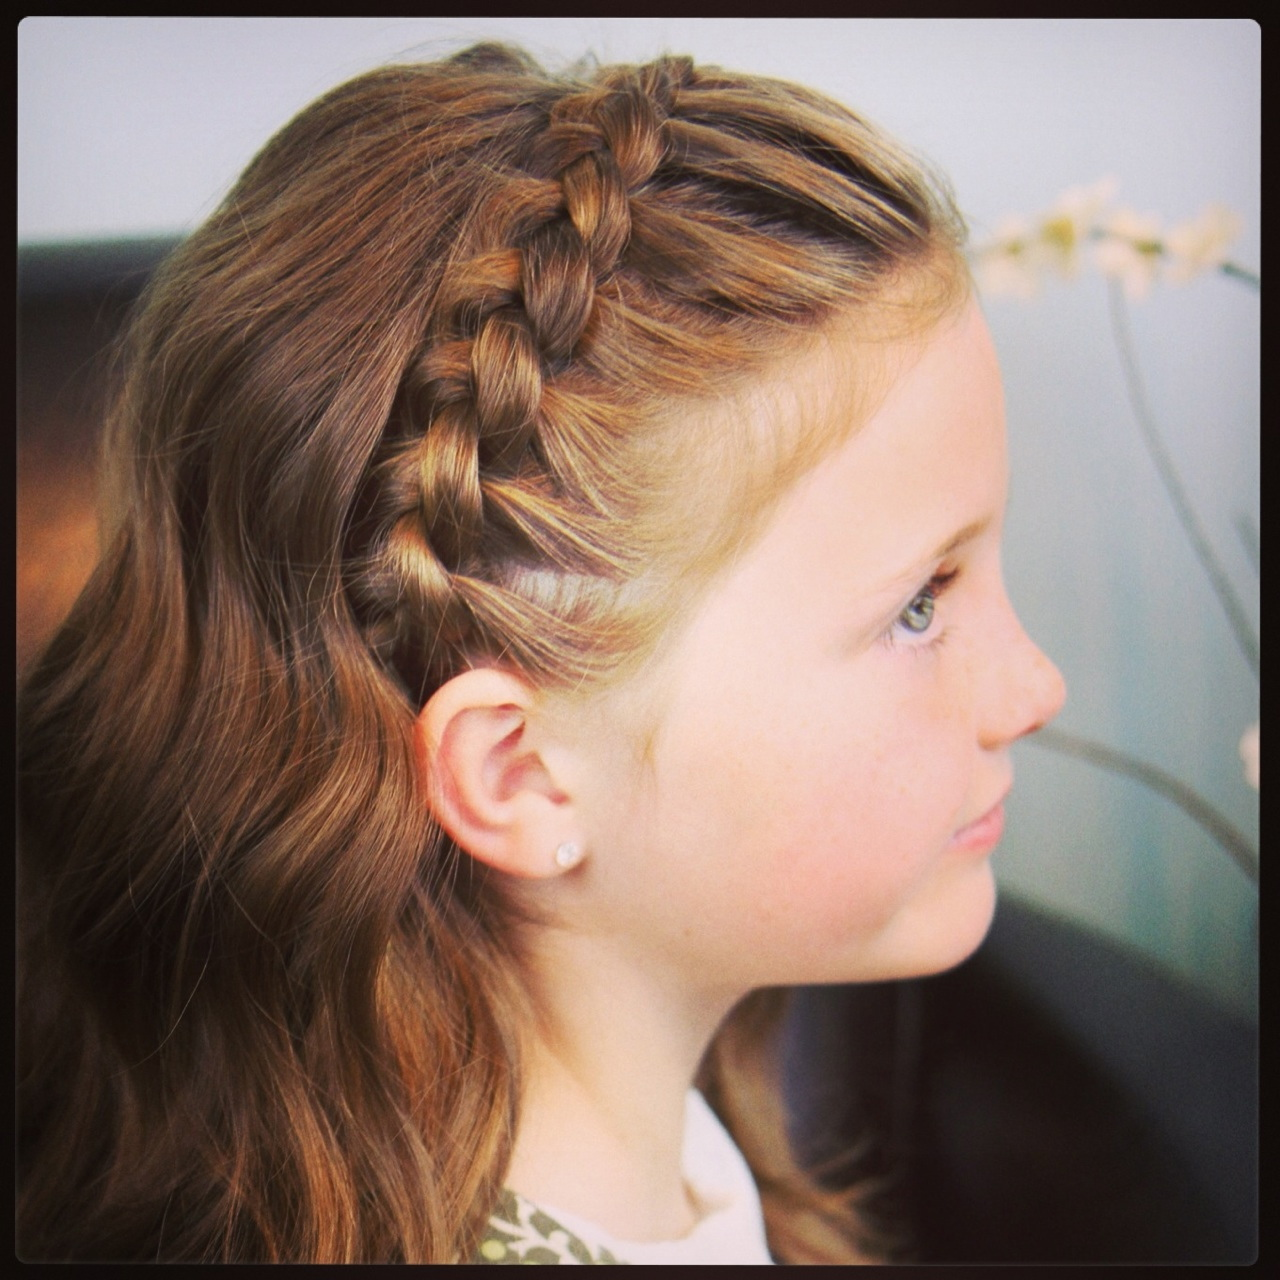 Cute Girl Hairstyle Braid Headband